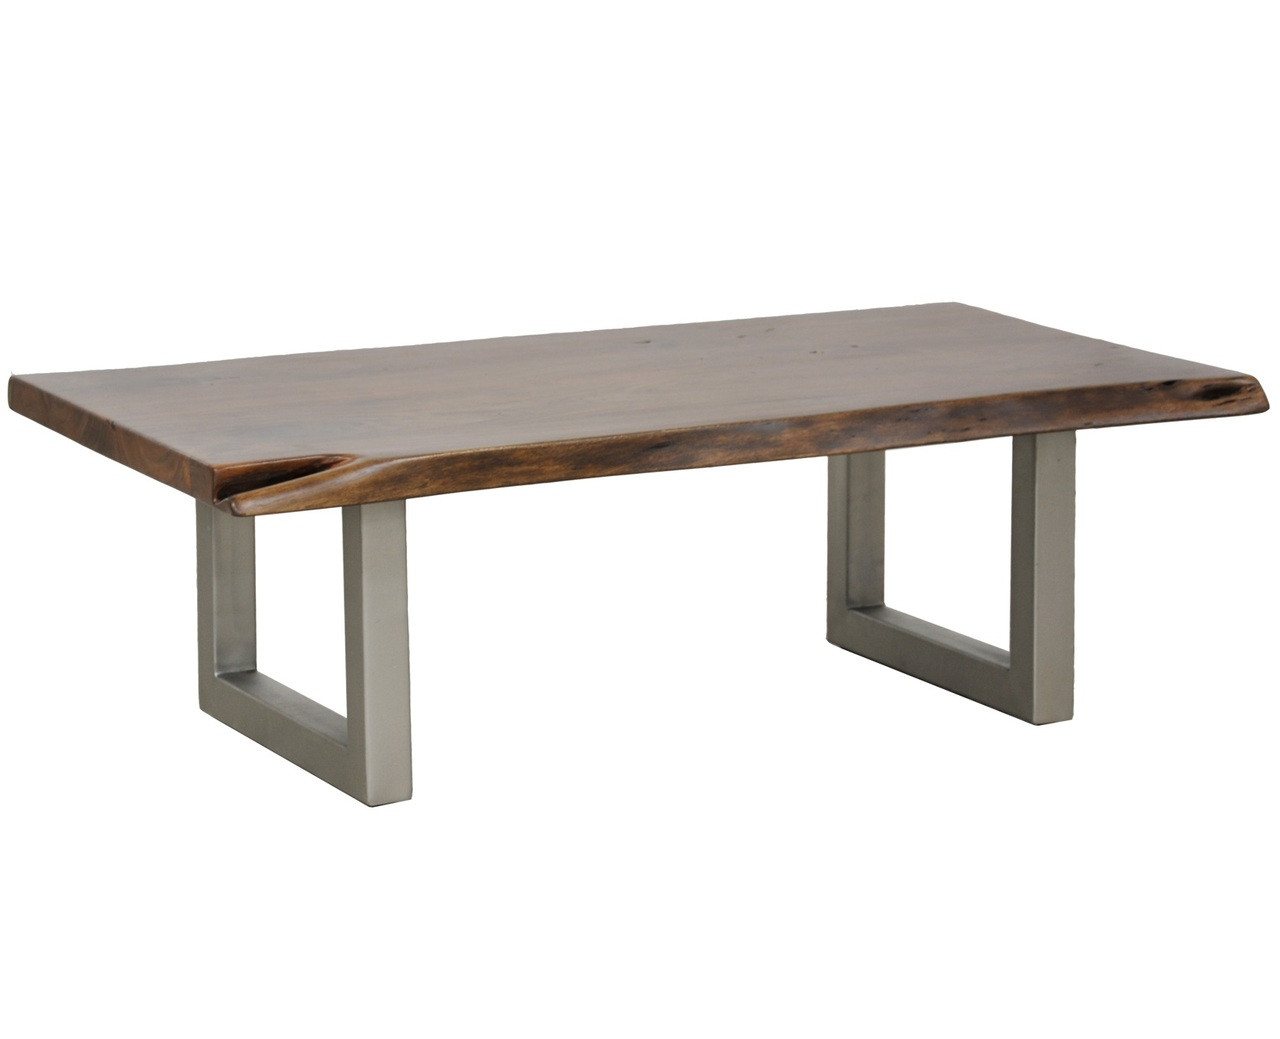 Montana solid wood metal leg coffee table zin home for Wood top metal legs coffee table